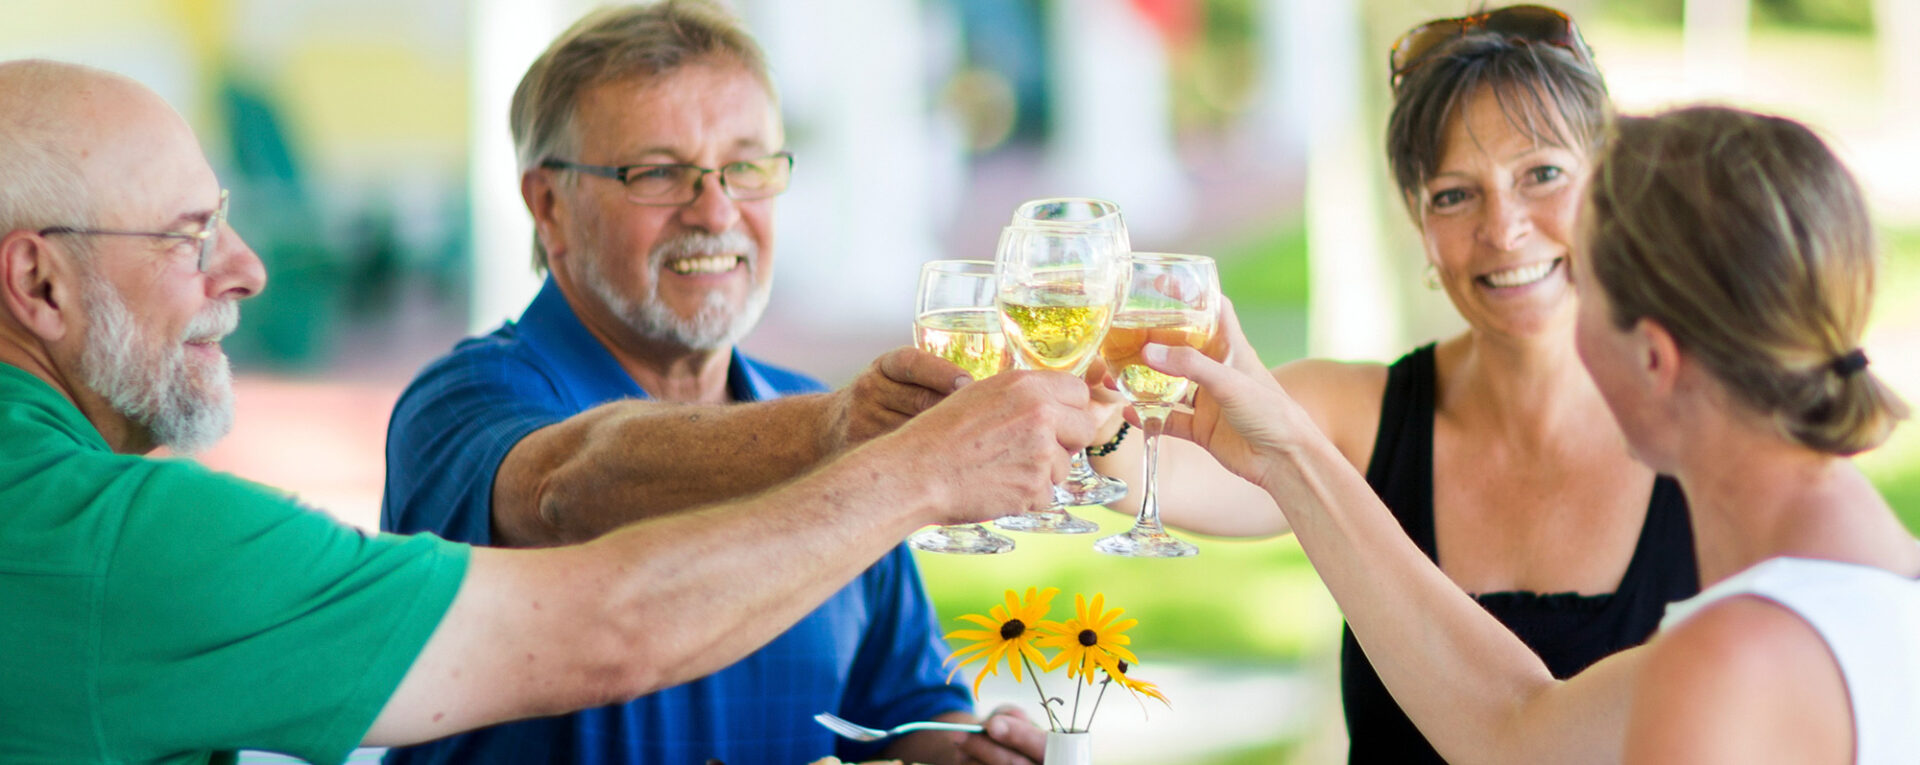 Baby Boomer consumers are still a big deal in your restaurant